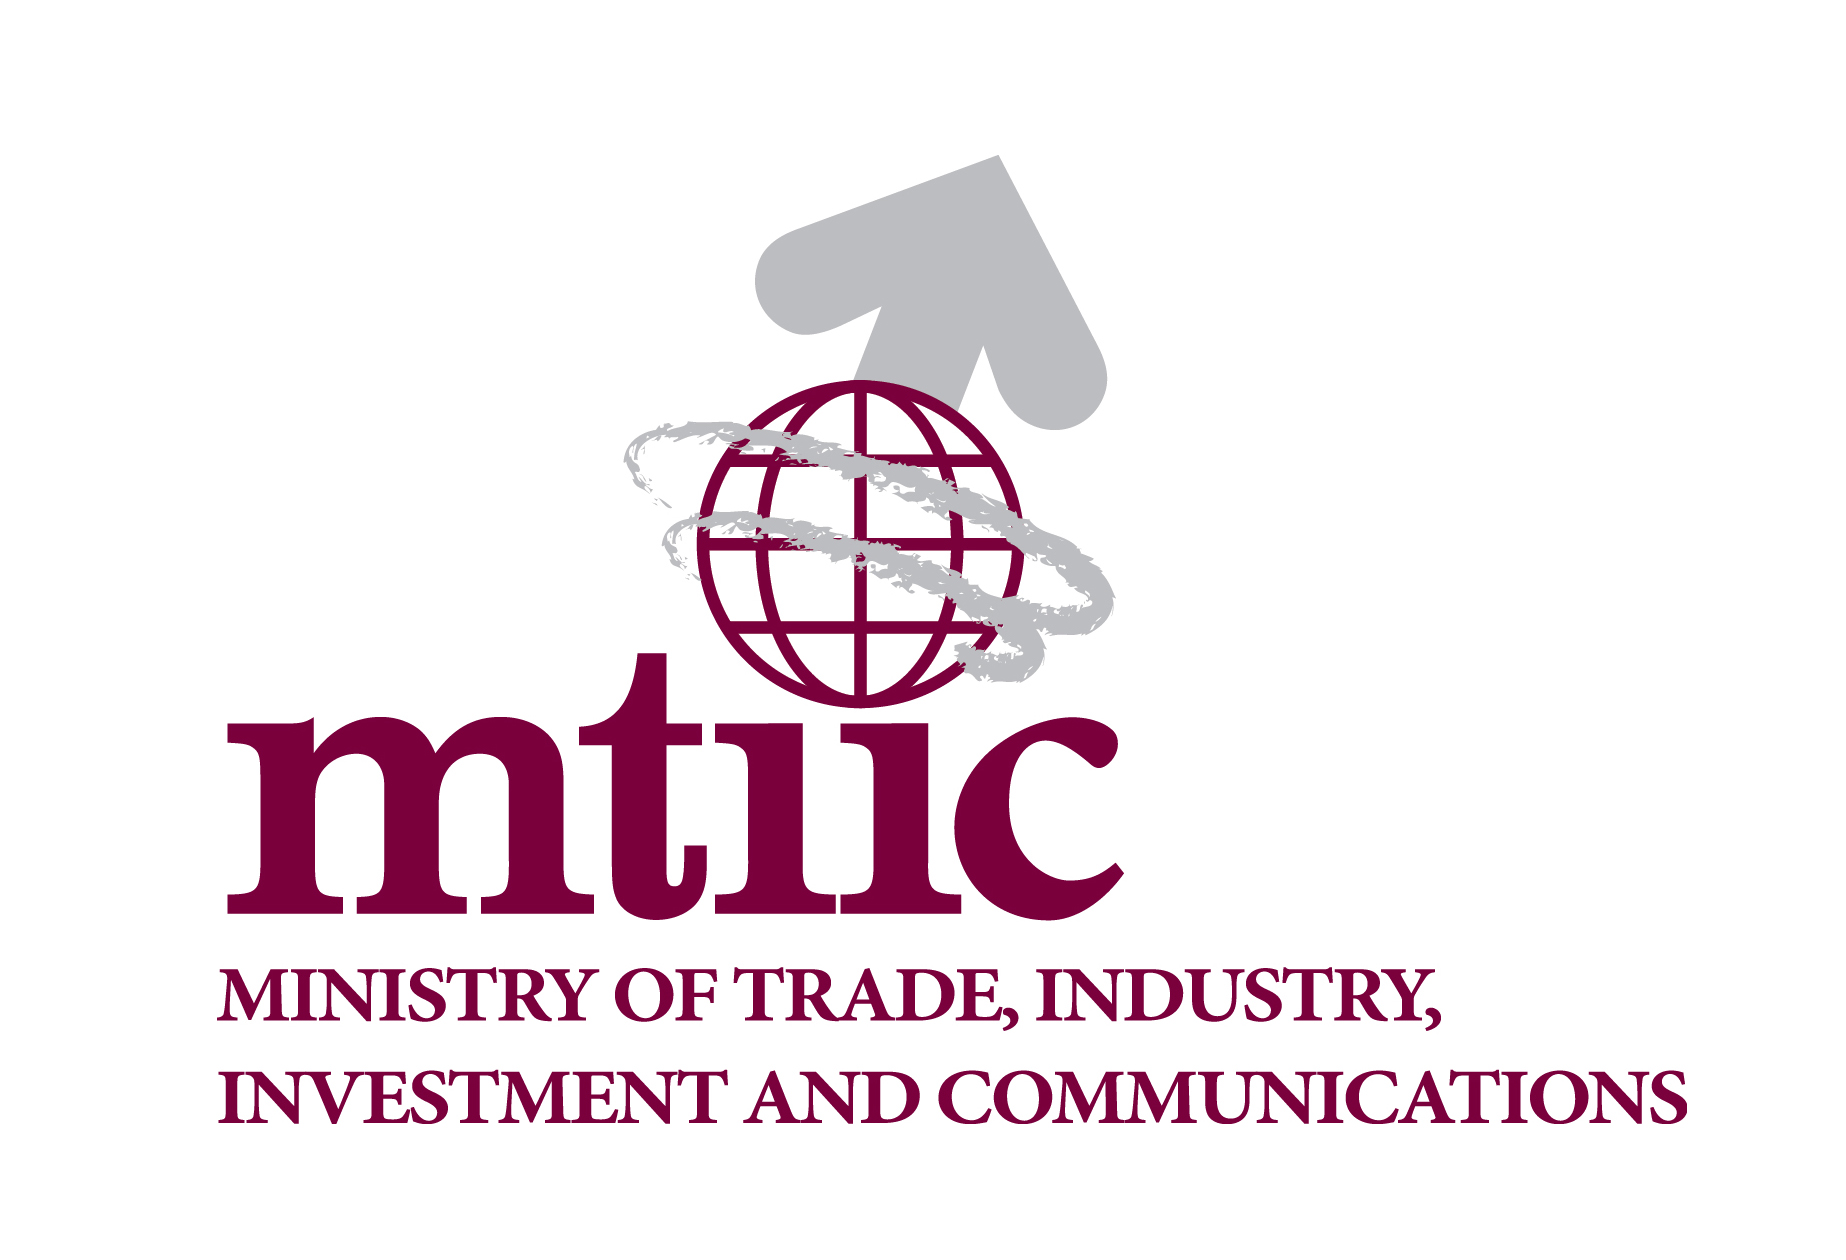 Ministry of Trade, Industry, Investment and Communications